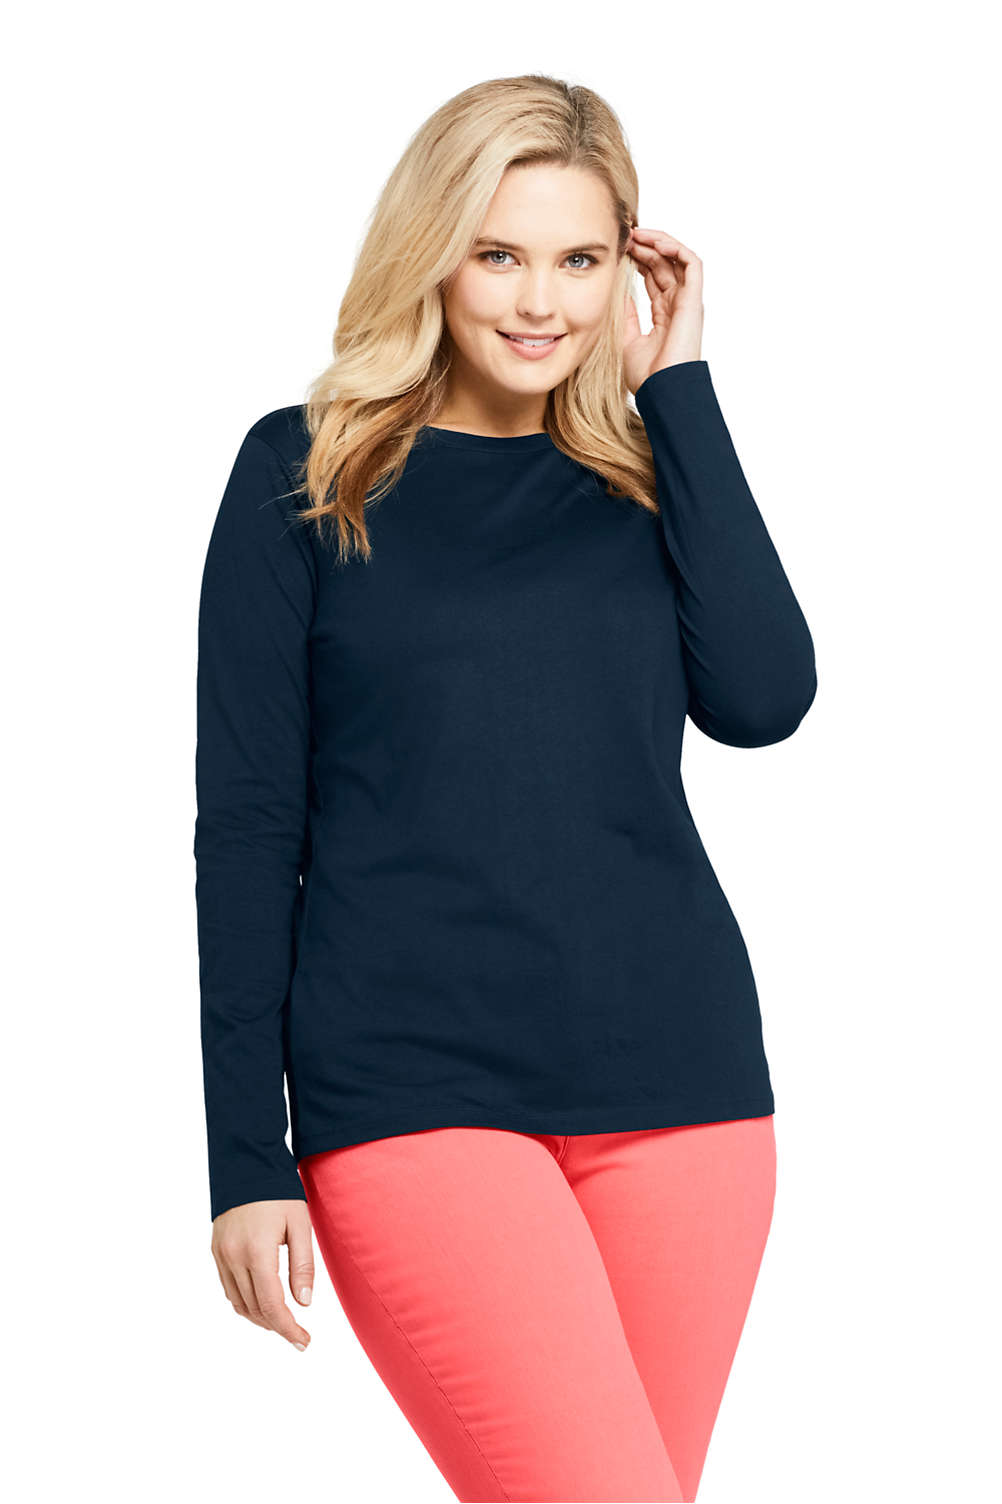 a26297ce0274 Women's Plus Size Relaxed Fit Supima Cotton Crewneck Long Sleeve T-shirt  from Lands' End